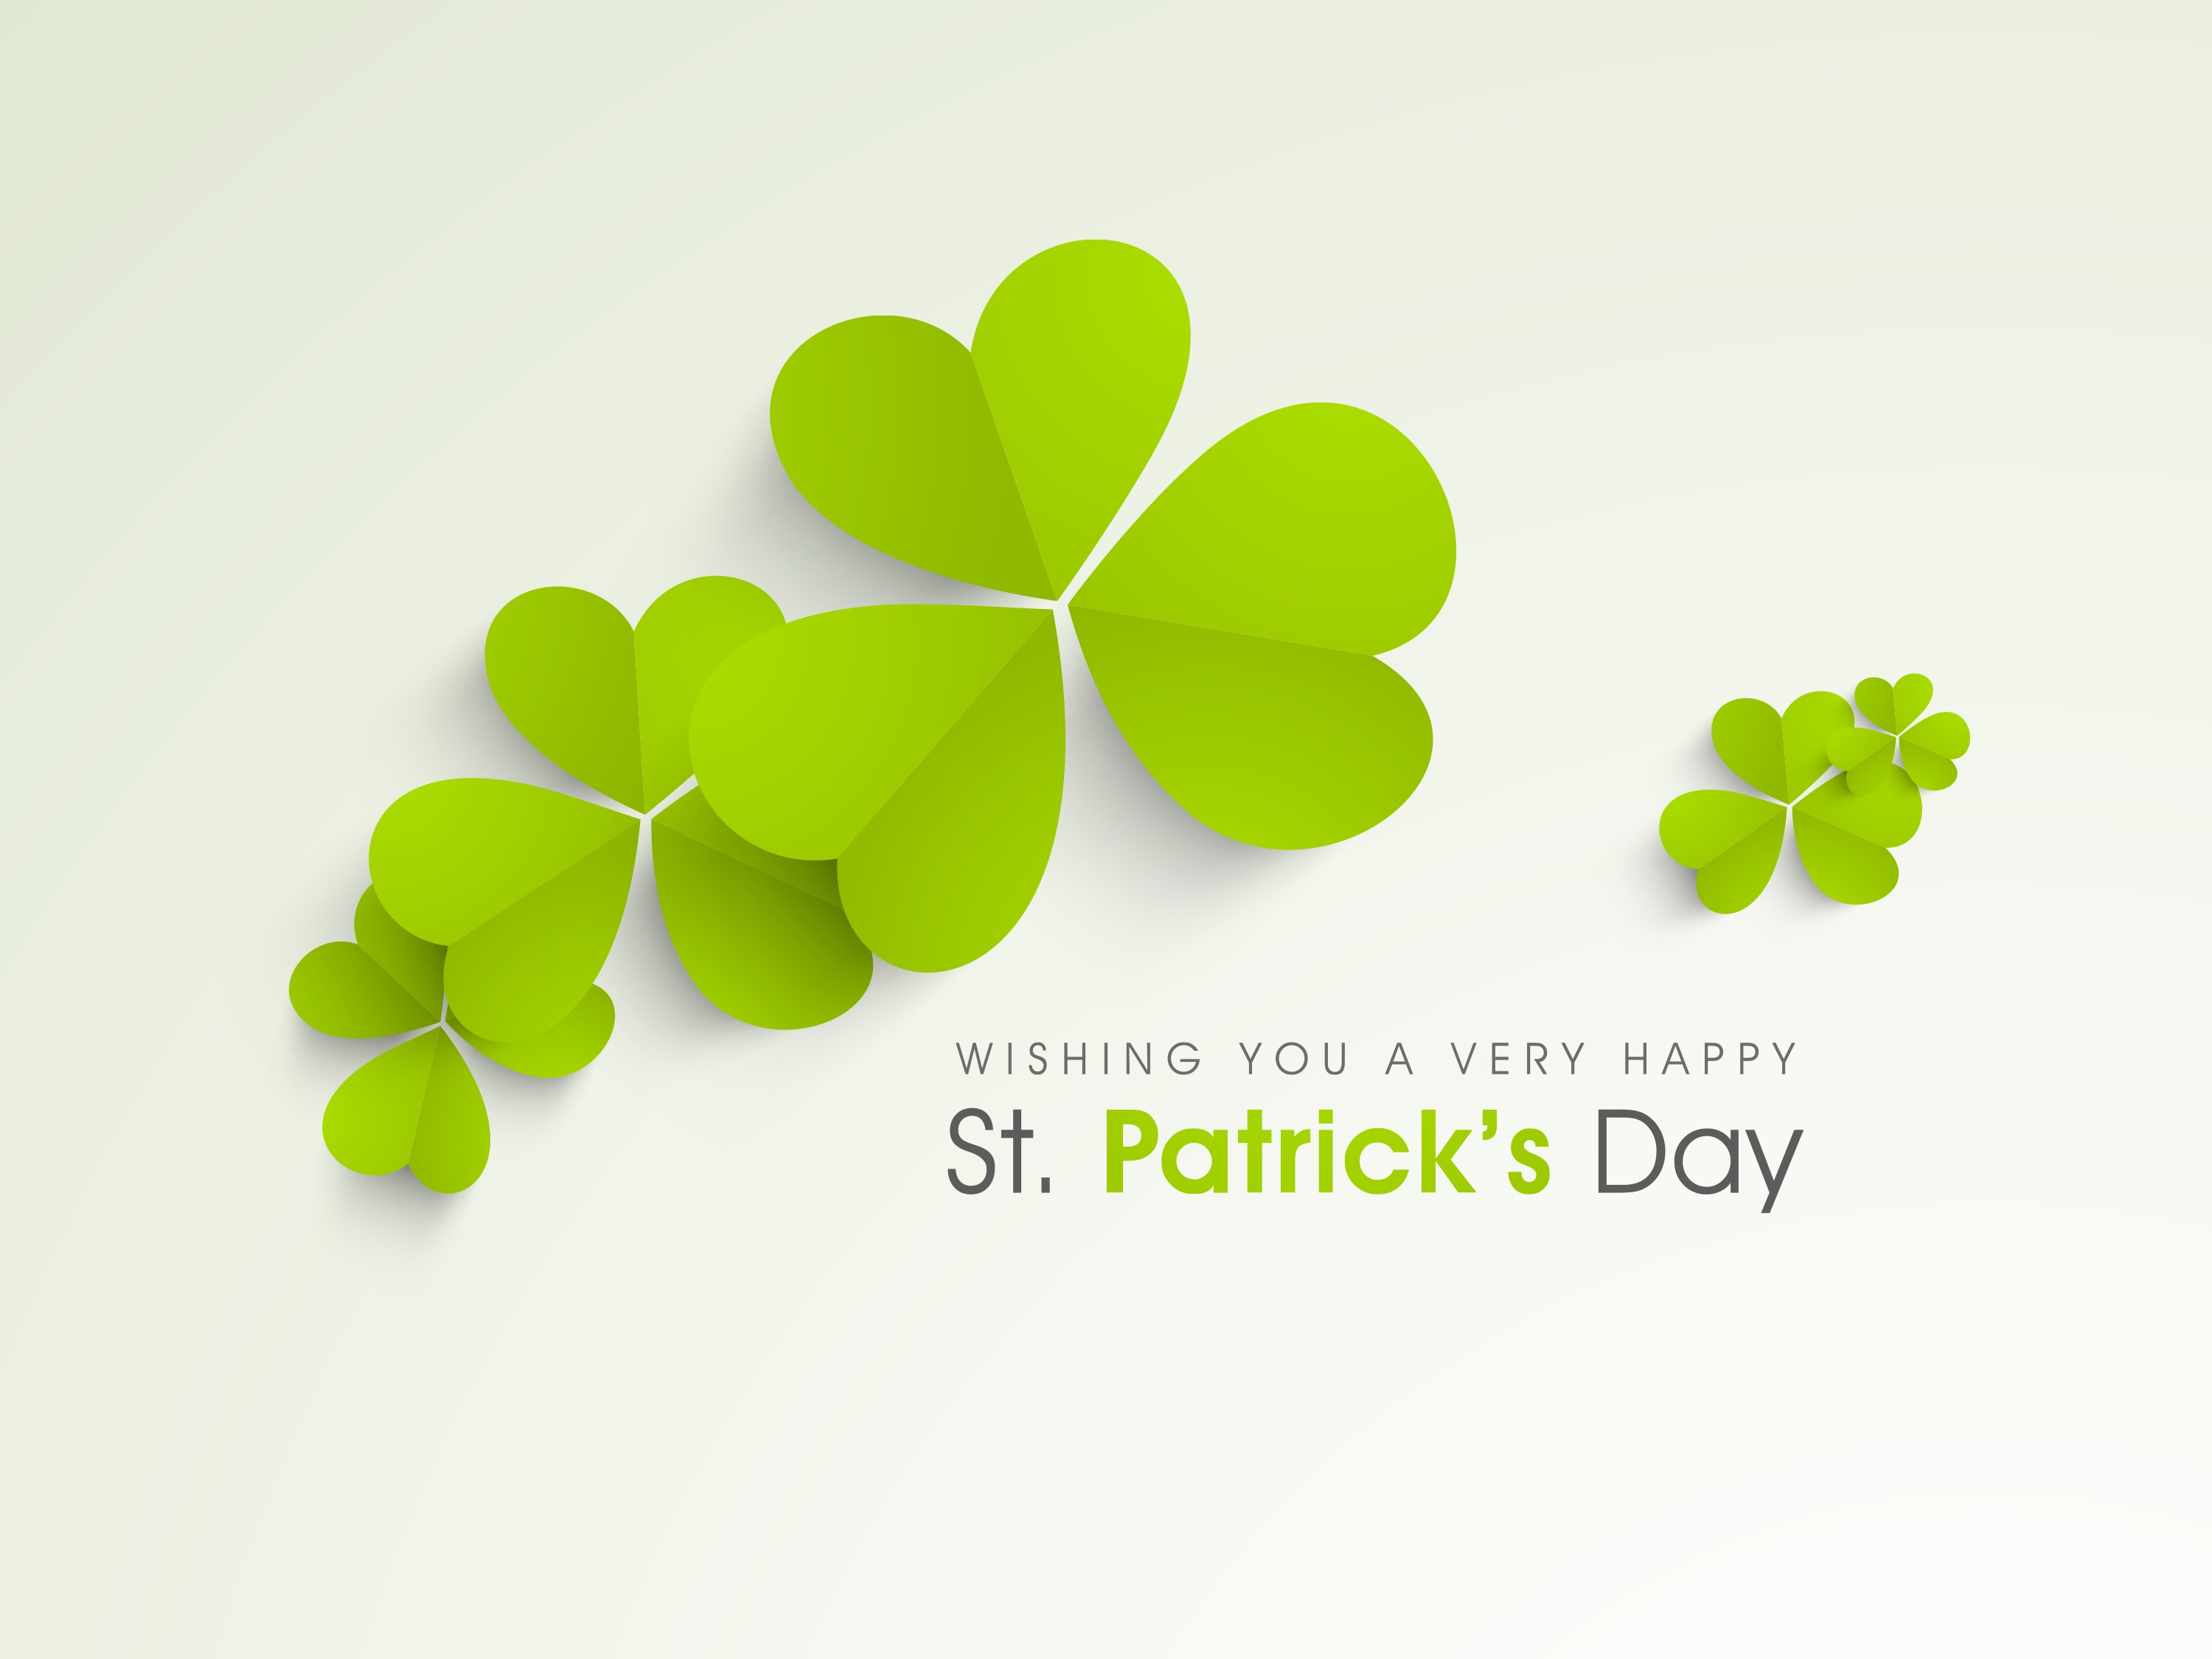 happy-st-patricks-day-background-with-clover-leafs-on-shiny-green-backgroun_71jChM_L